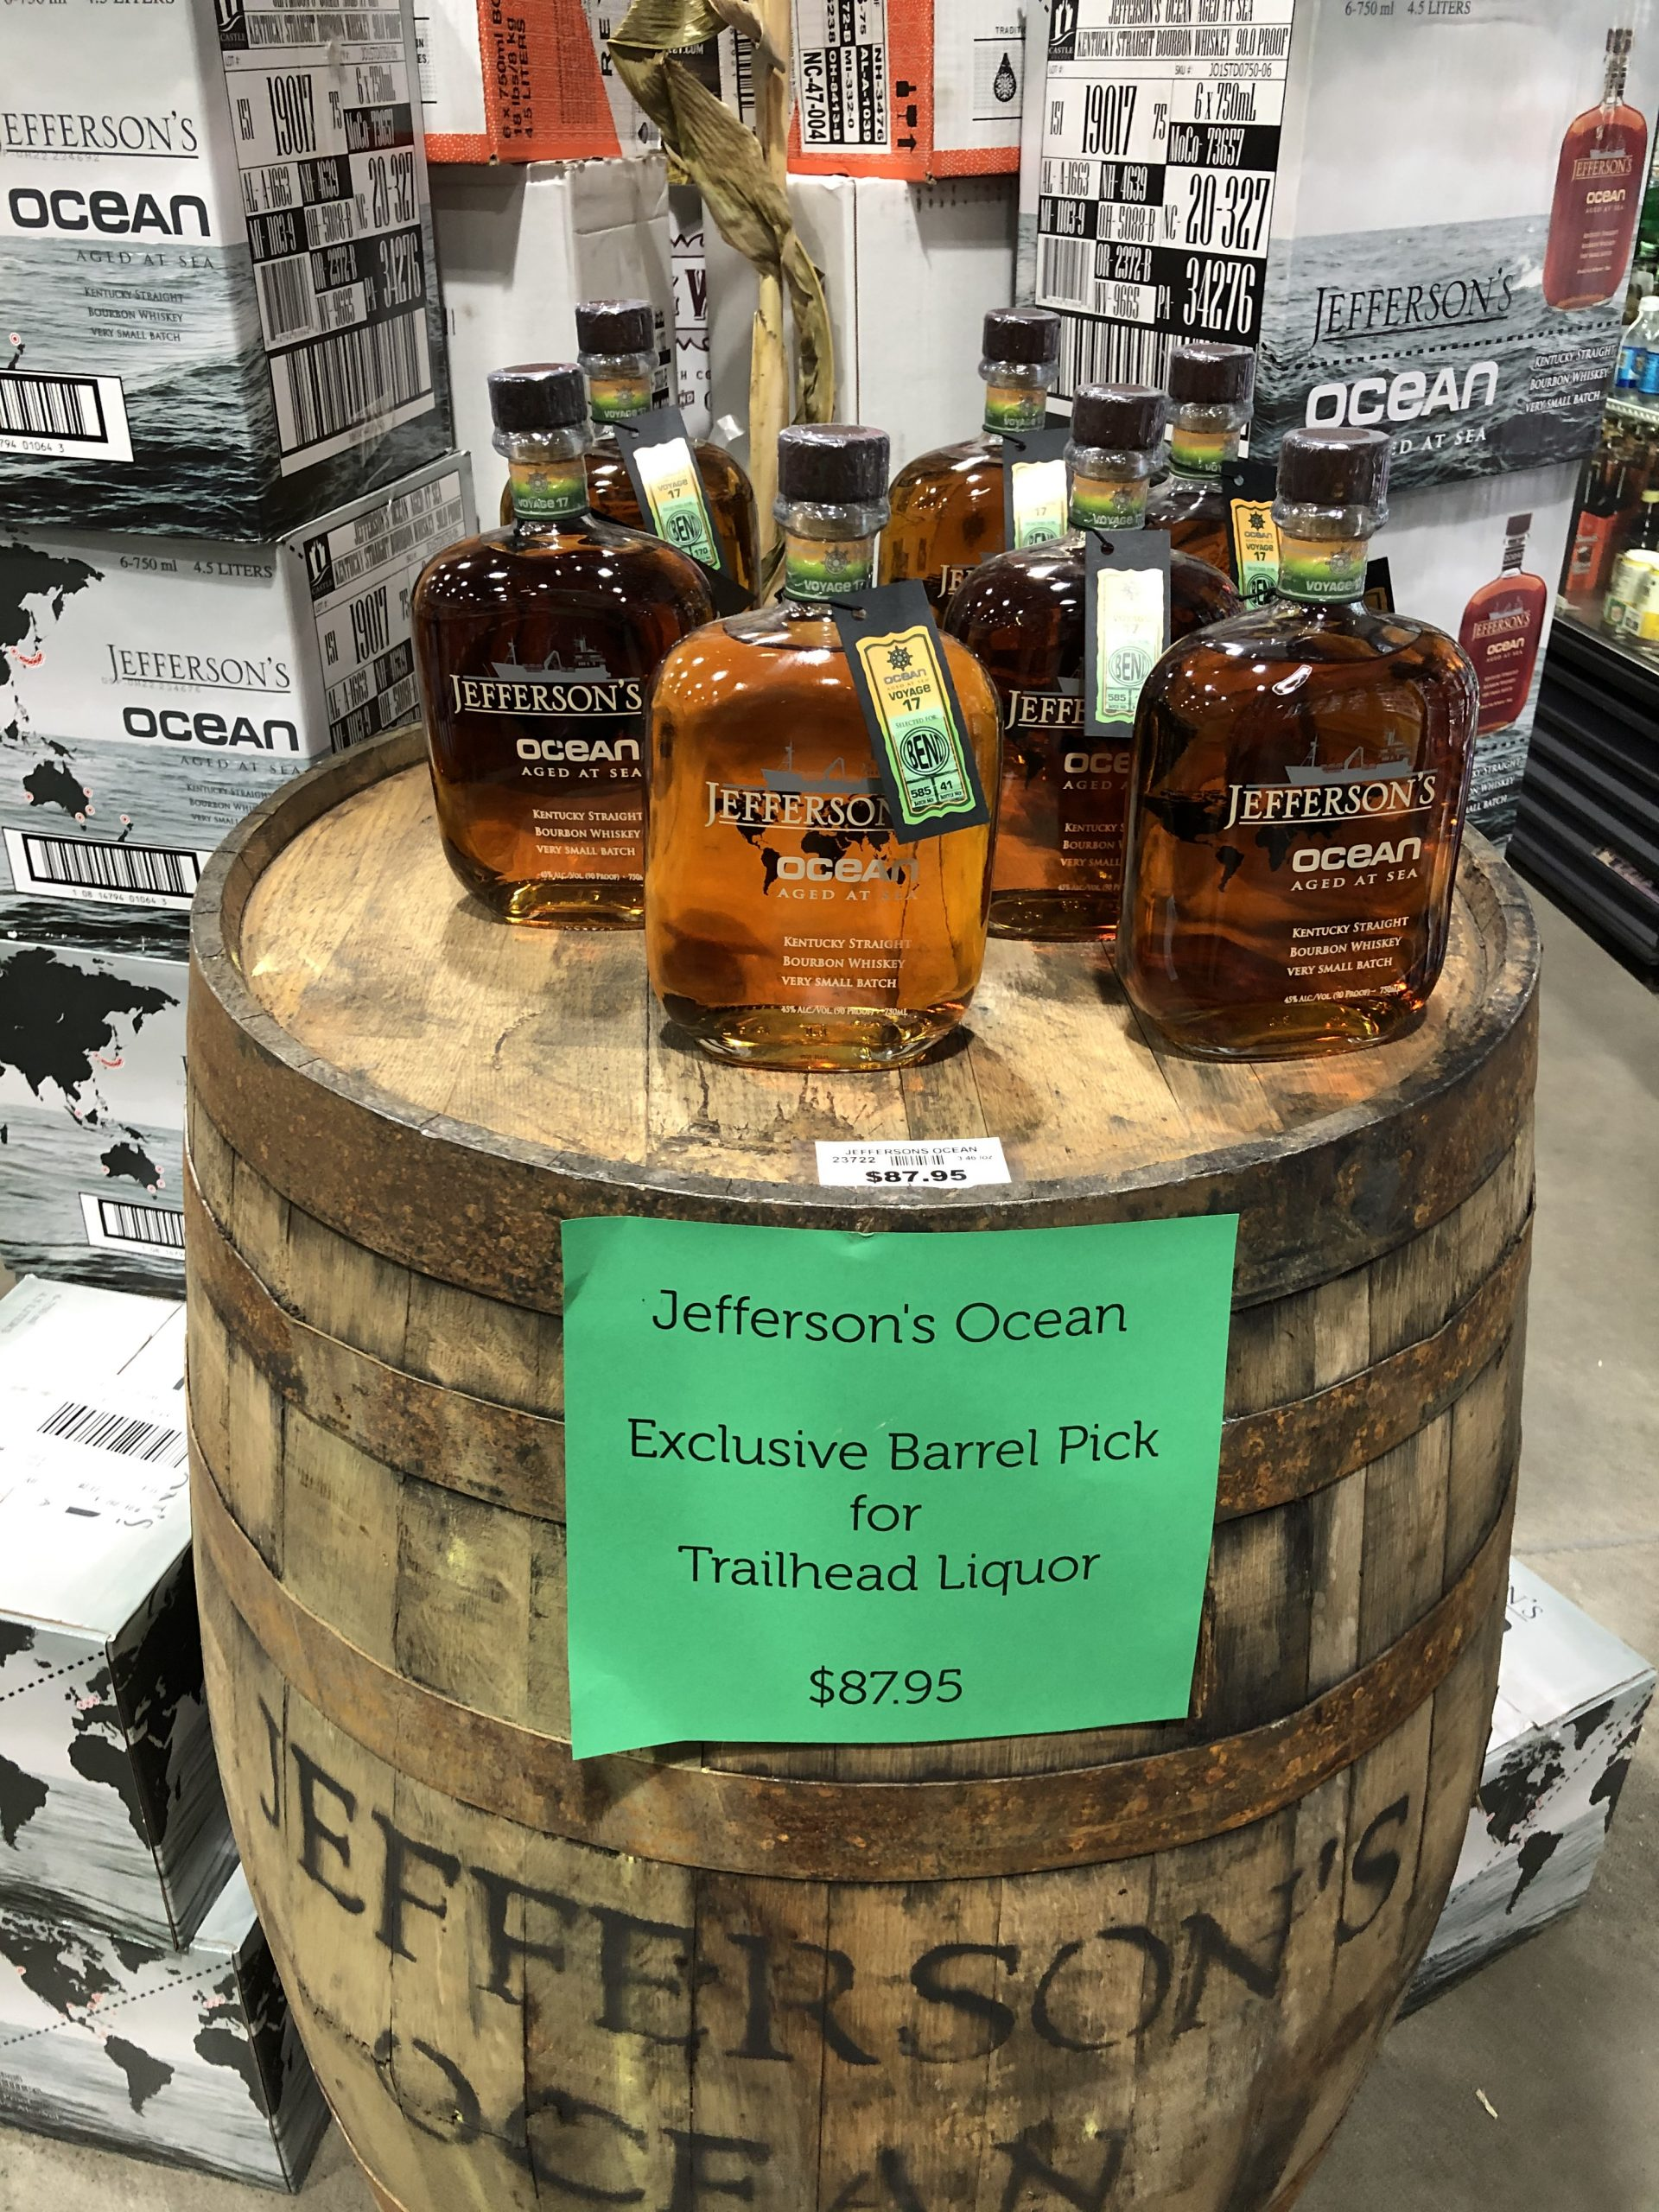 Our barrel of Jefferson's Ocean, specially selected by Trailhead Liquor.